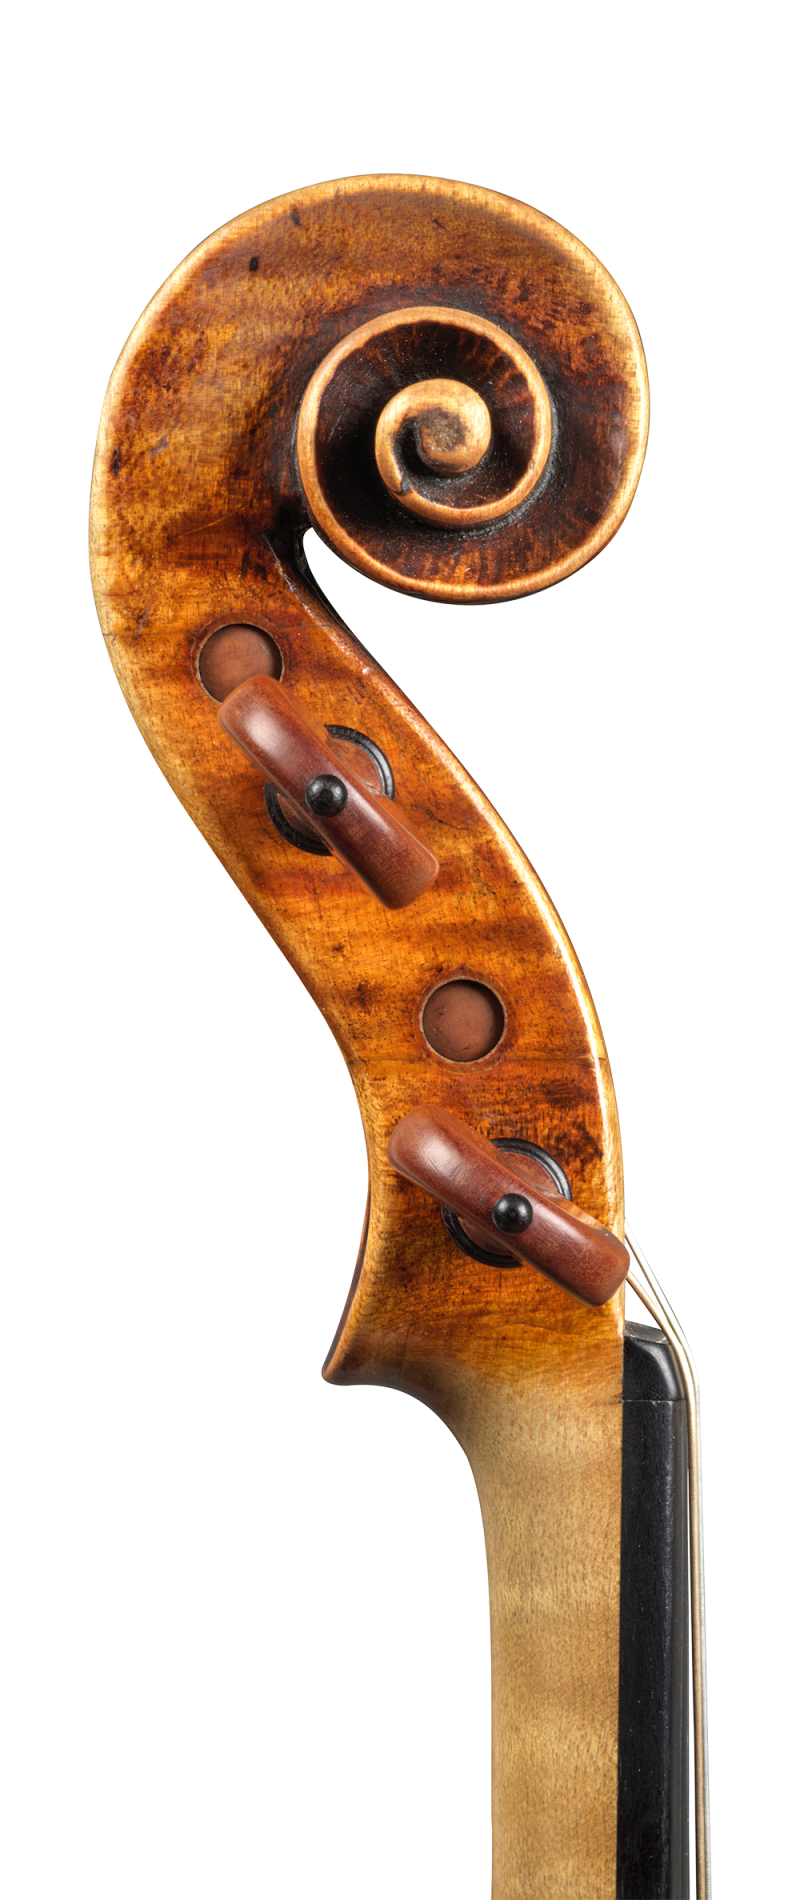 Scroll of a violin by Pietro Guarneri of Venice, 1751, Ex-Benedetti. It was the concert instrument of the renowned violinist Nicola Benedetti, and it was on this violin that she won the BBC Young Musician of The Year in 2004.